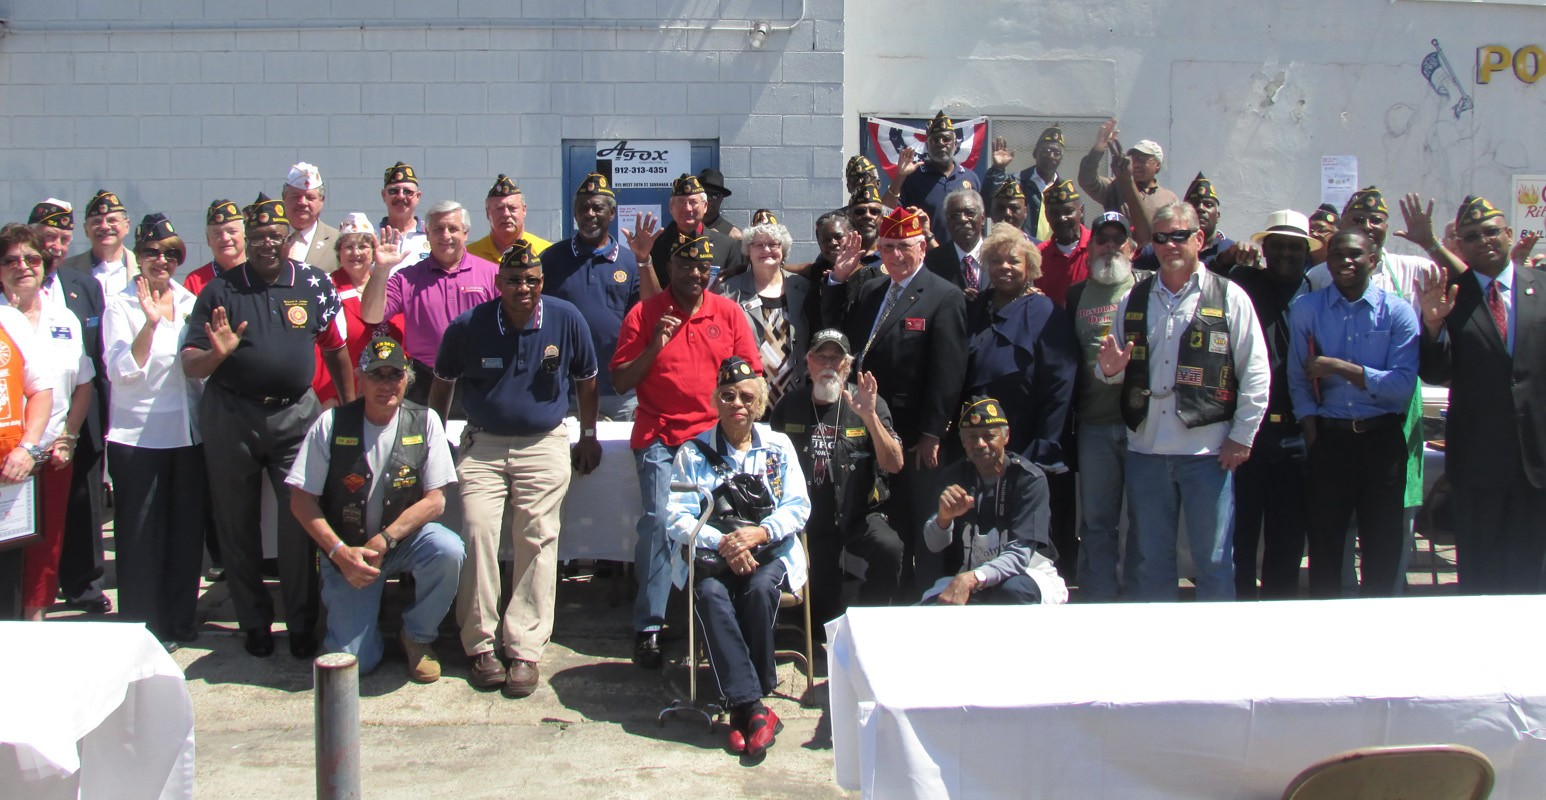 Members of American Legion Post 500, other local Legion members, and dignitaries